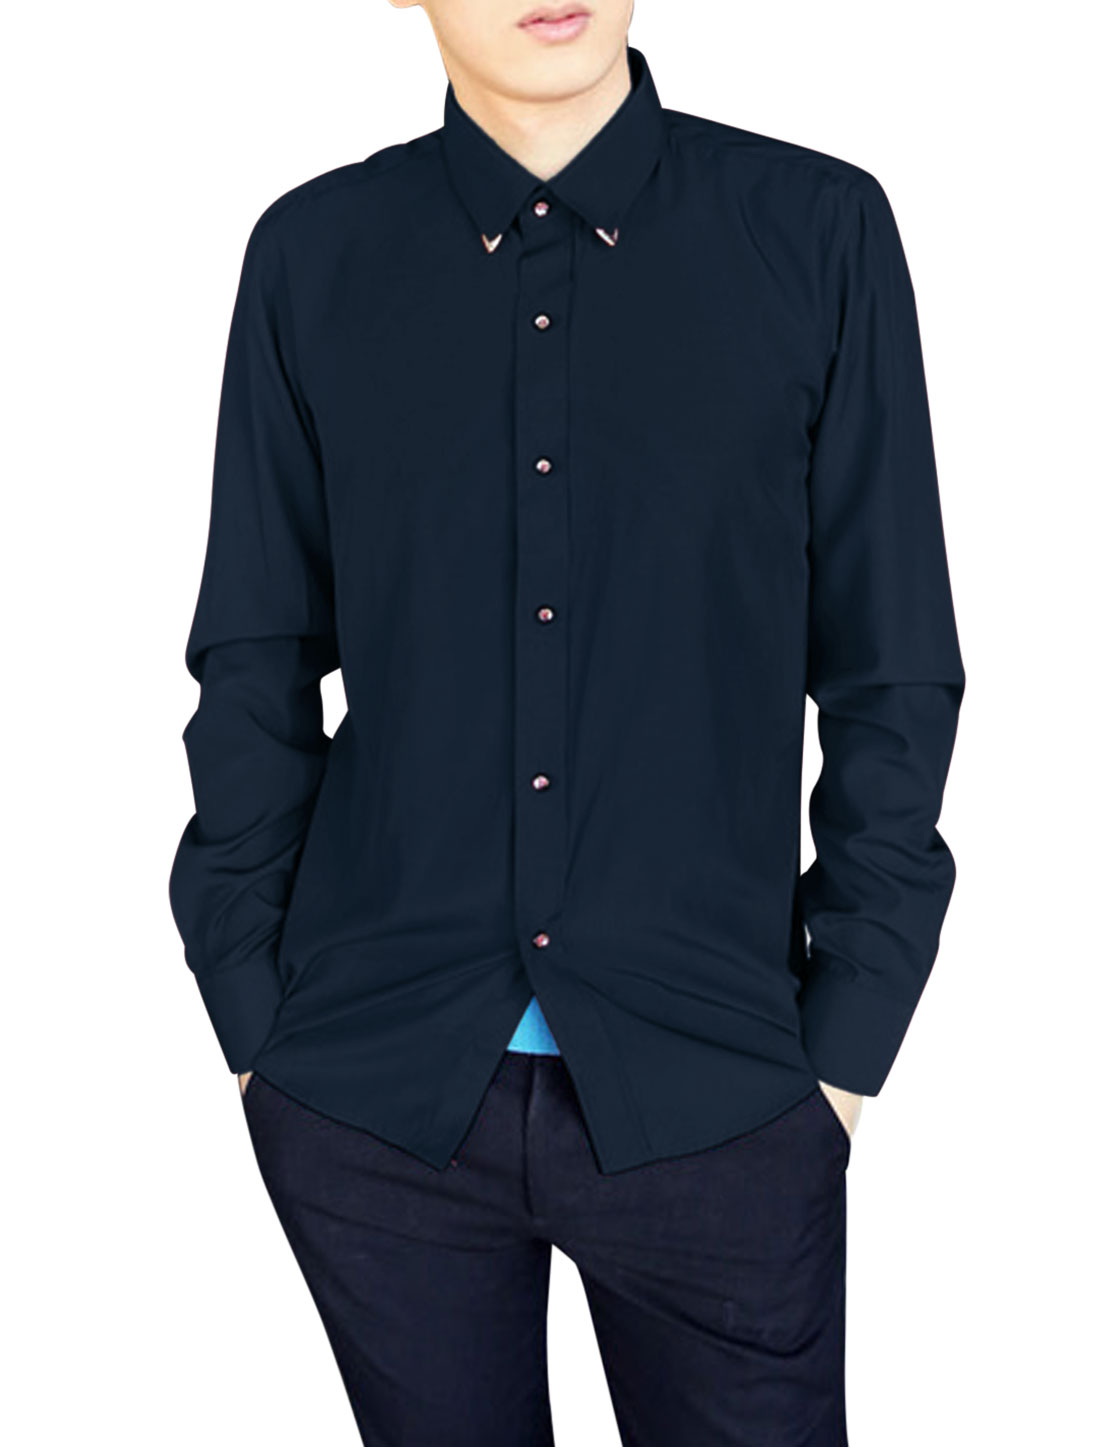 Men Point Collar Single Breasted Fashion Casual Shirt Navy Blue M